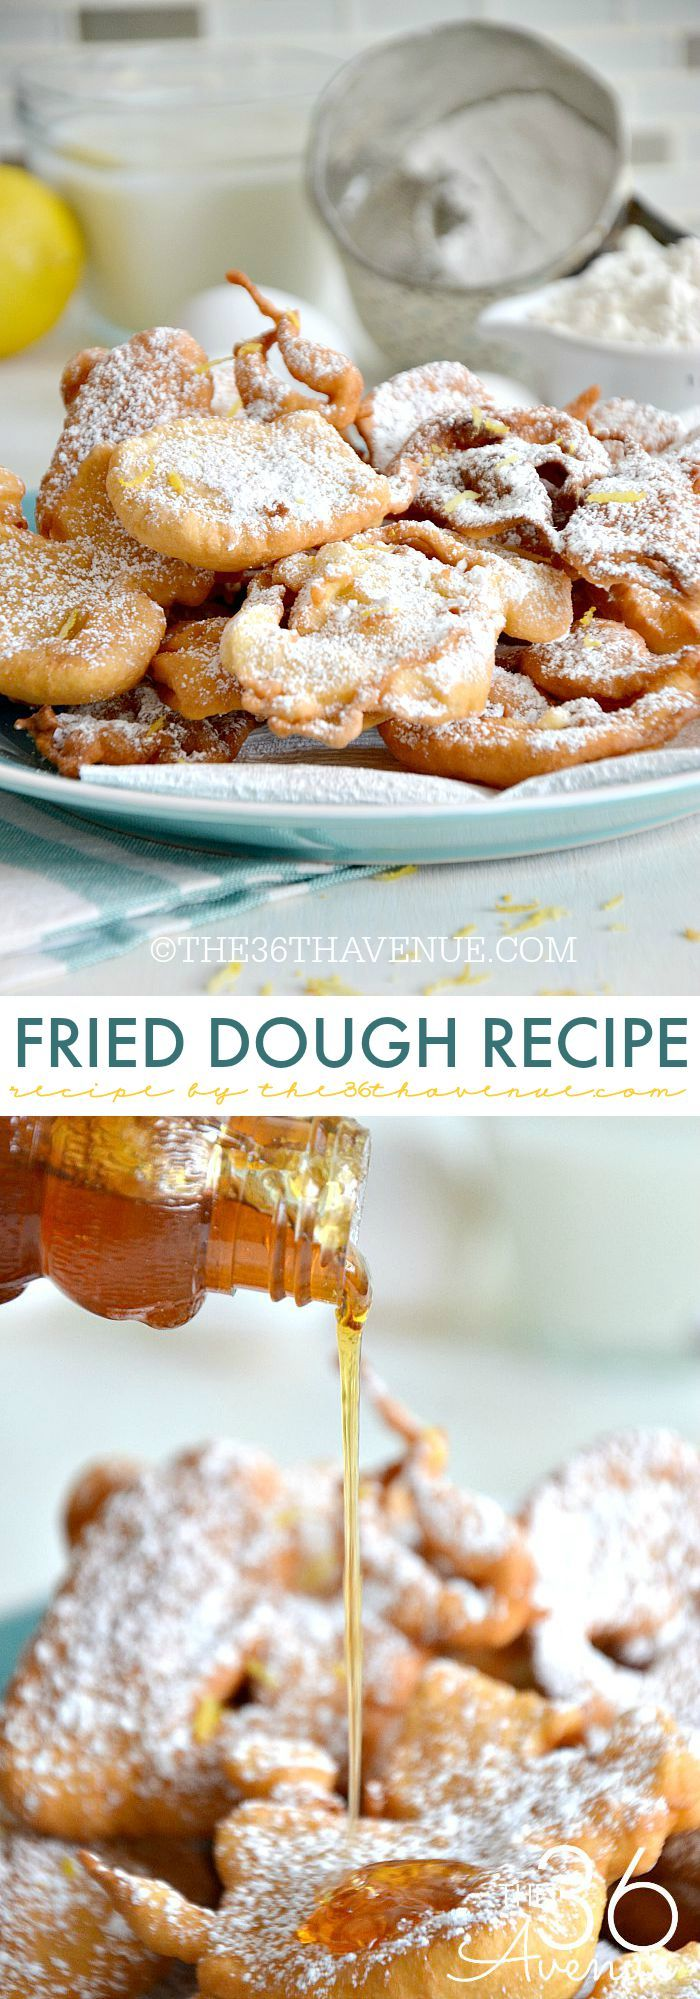 Recipe - Fried Dough Recipe... Such a yummy treat! Read more here http://www.the36thavenue.com/fried-dough-recipe/ ‎